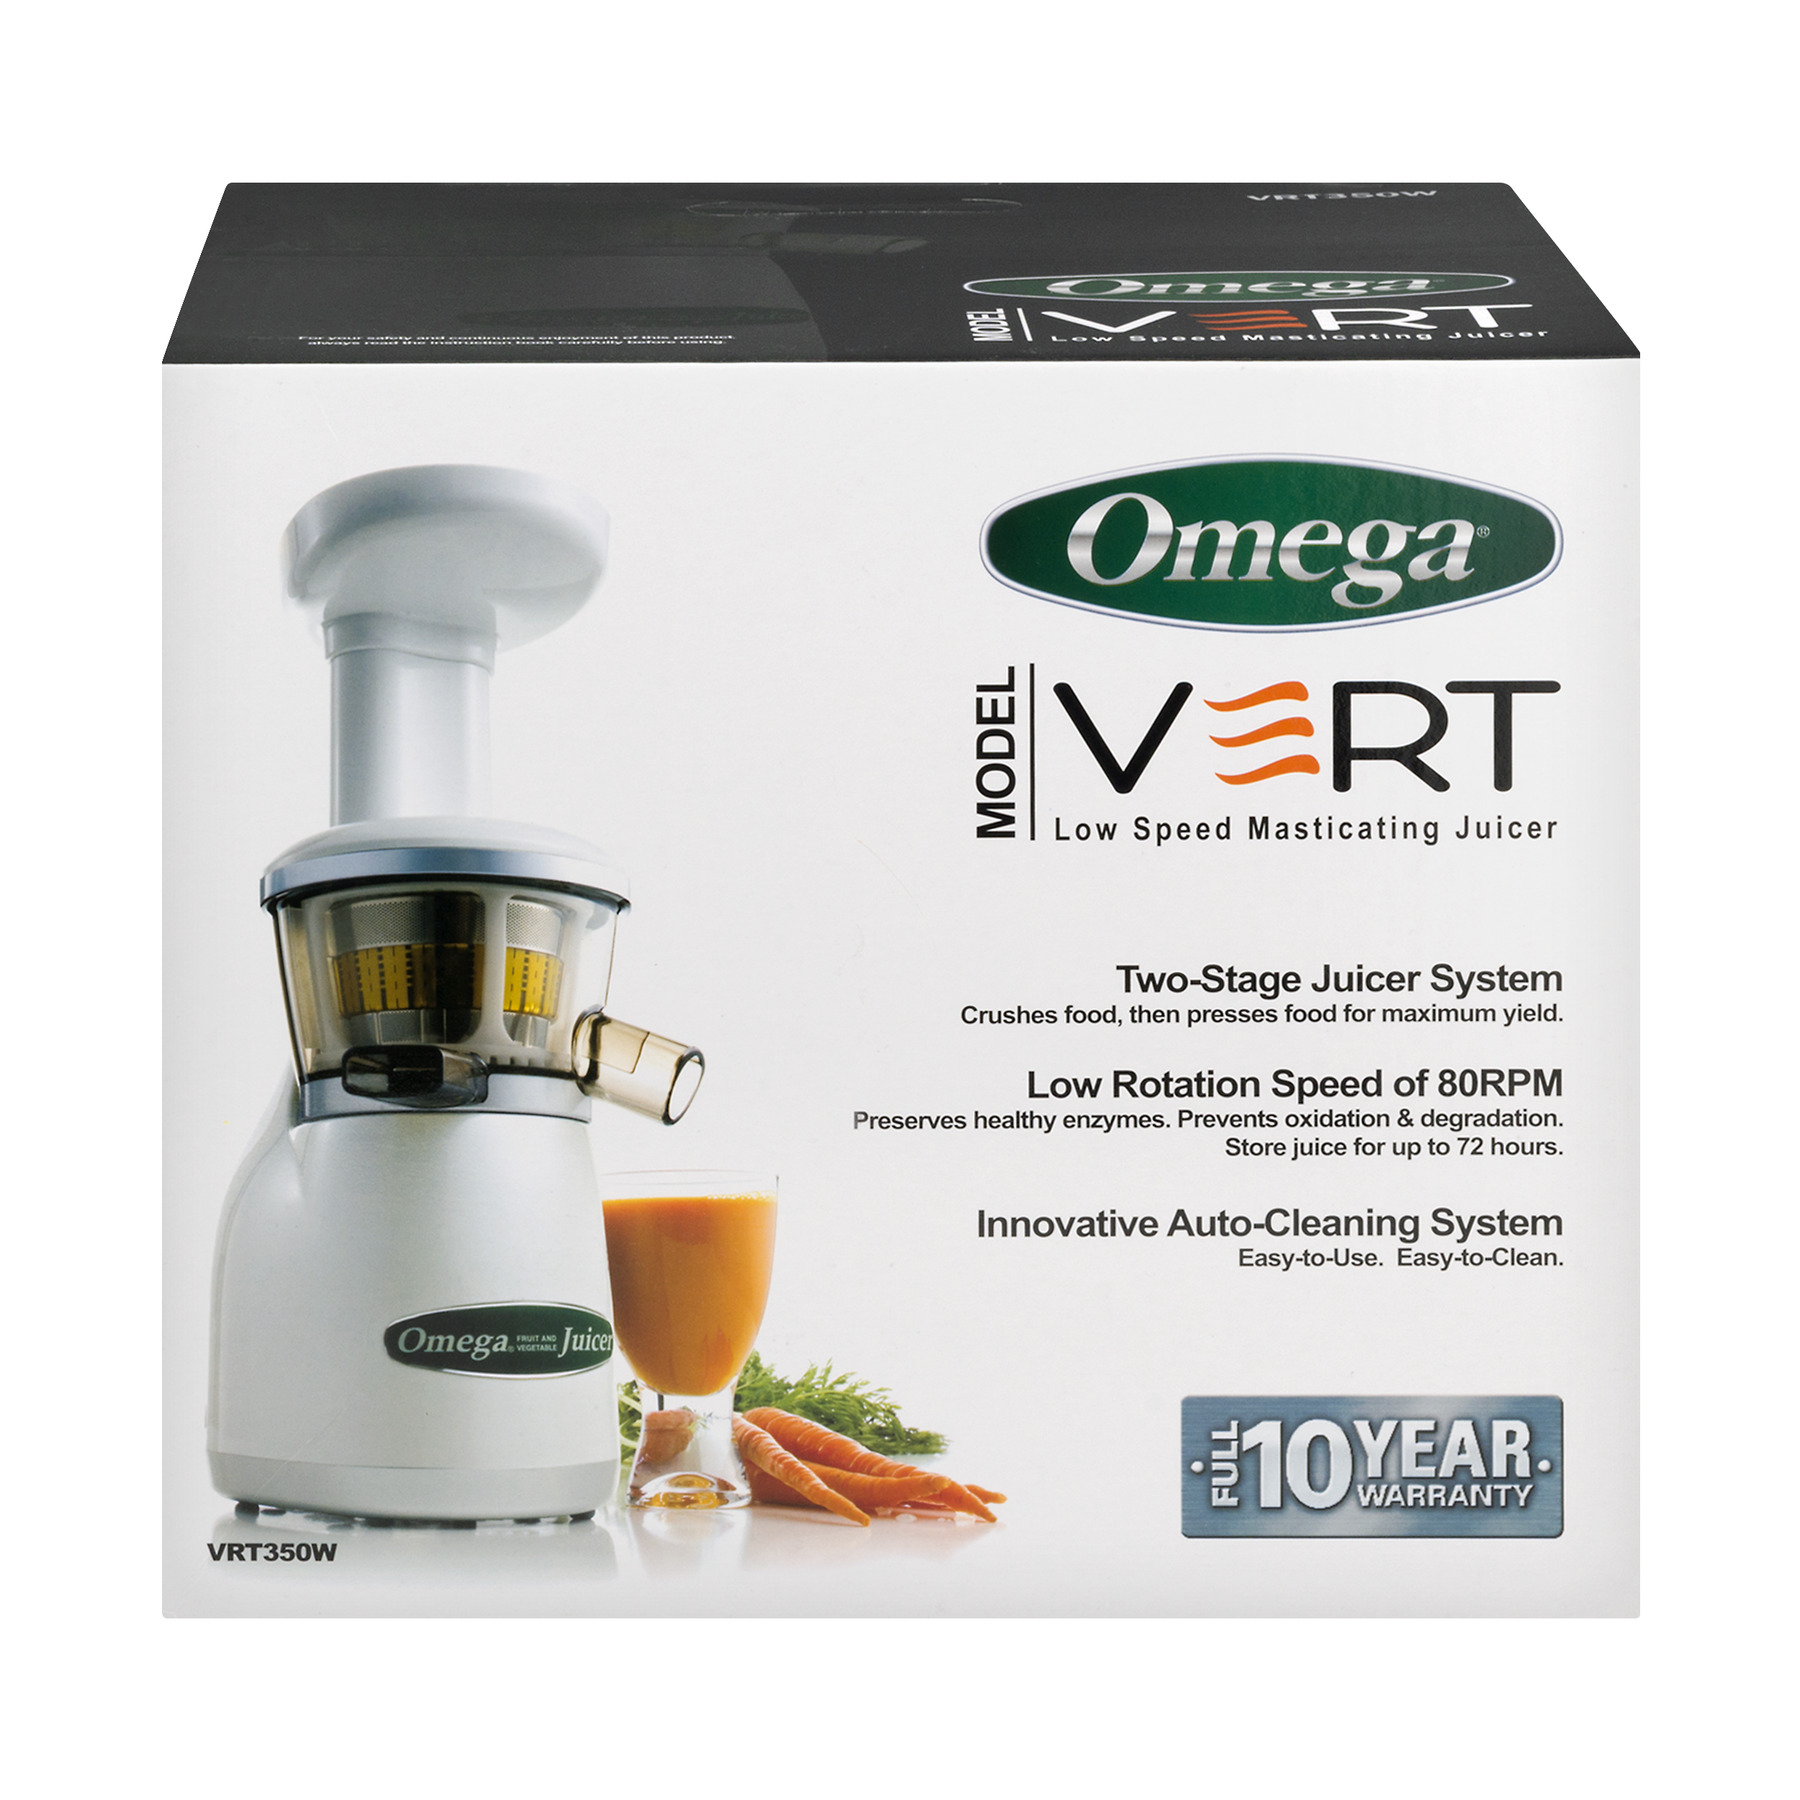 Omega VERT Low Speed Masticating Juicer, 1.0 CT